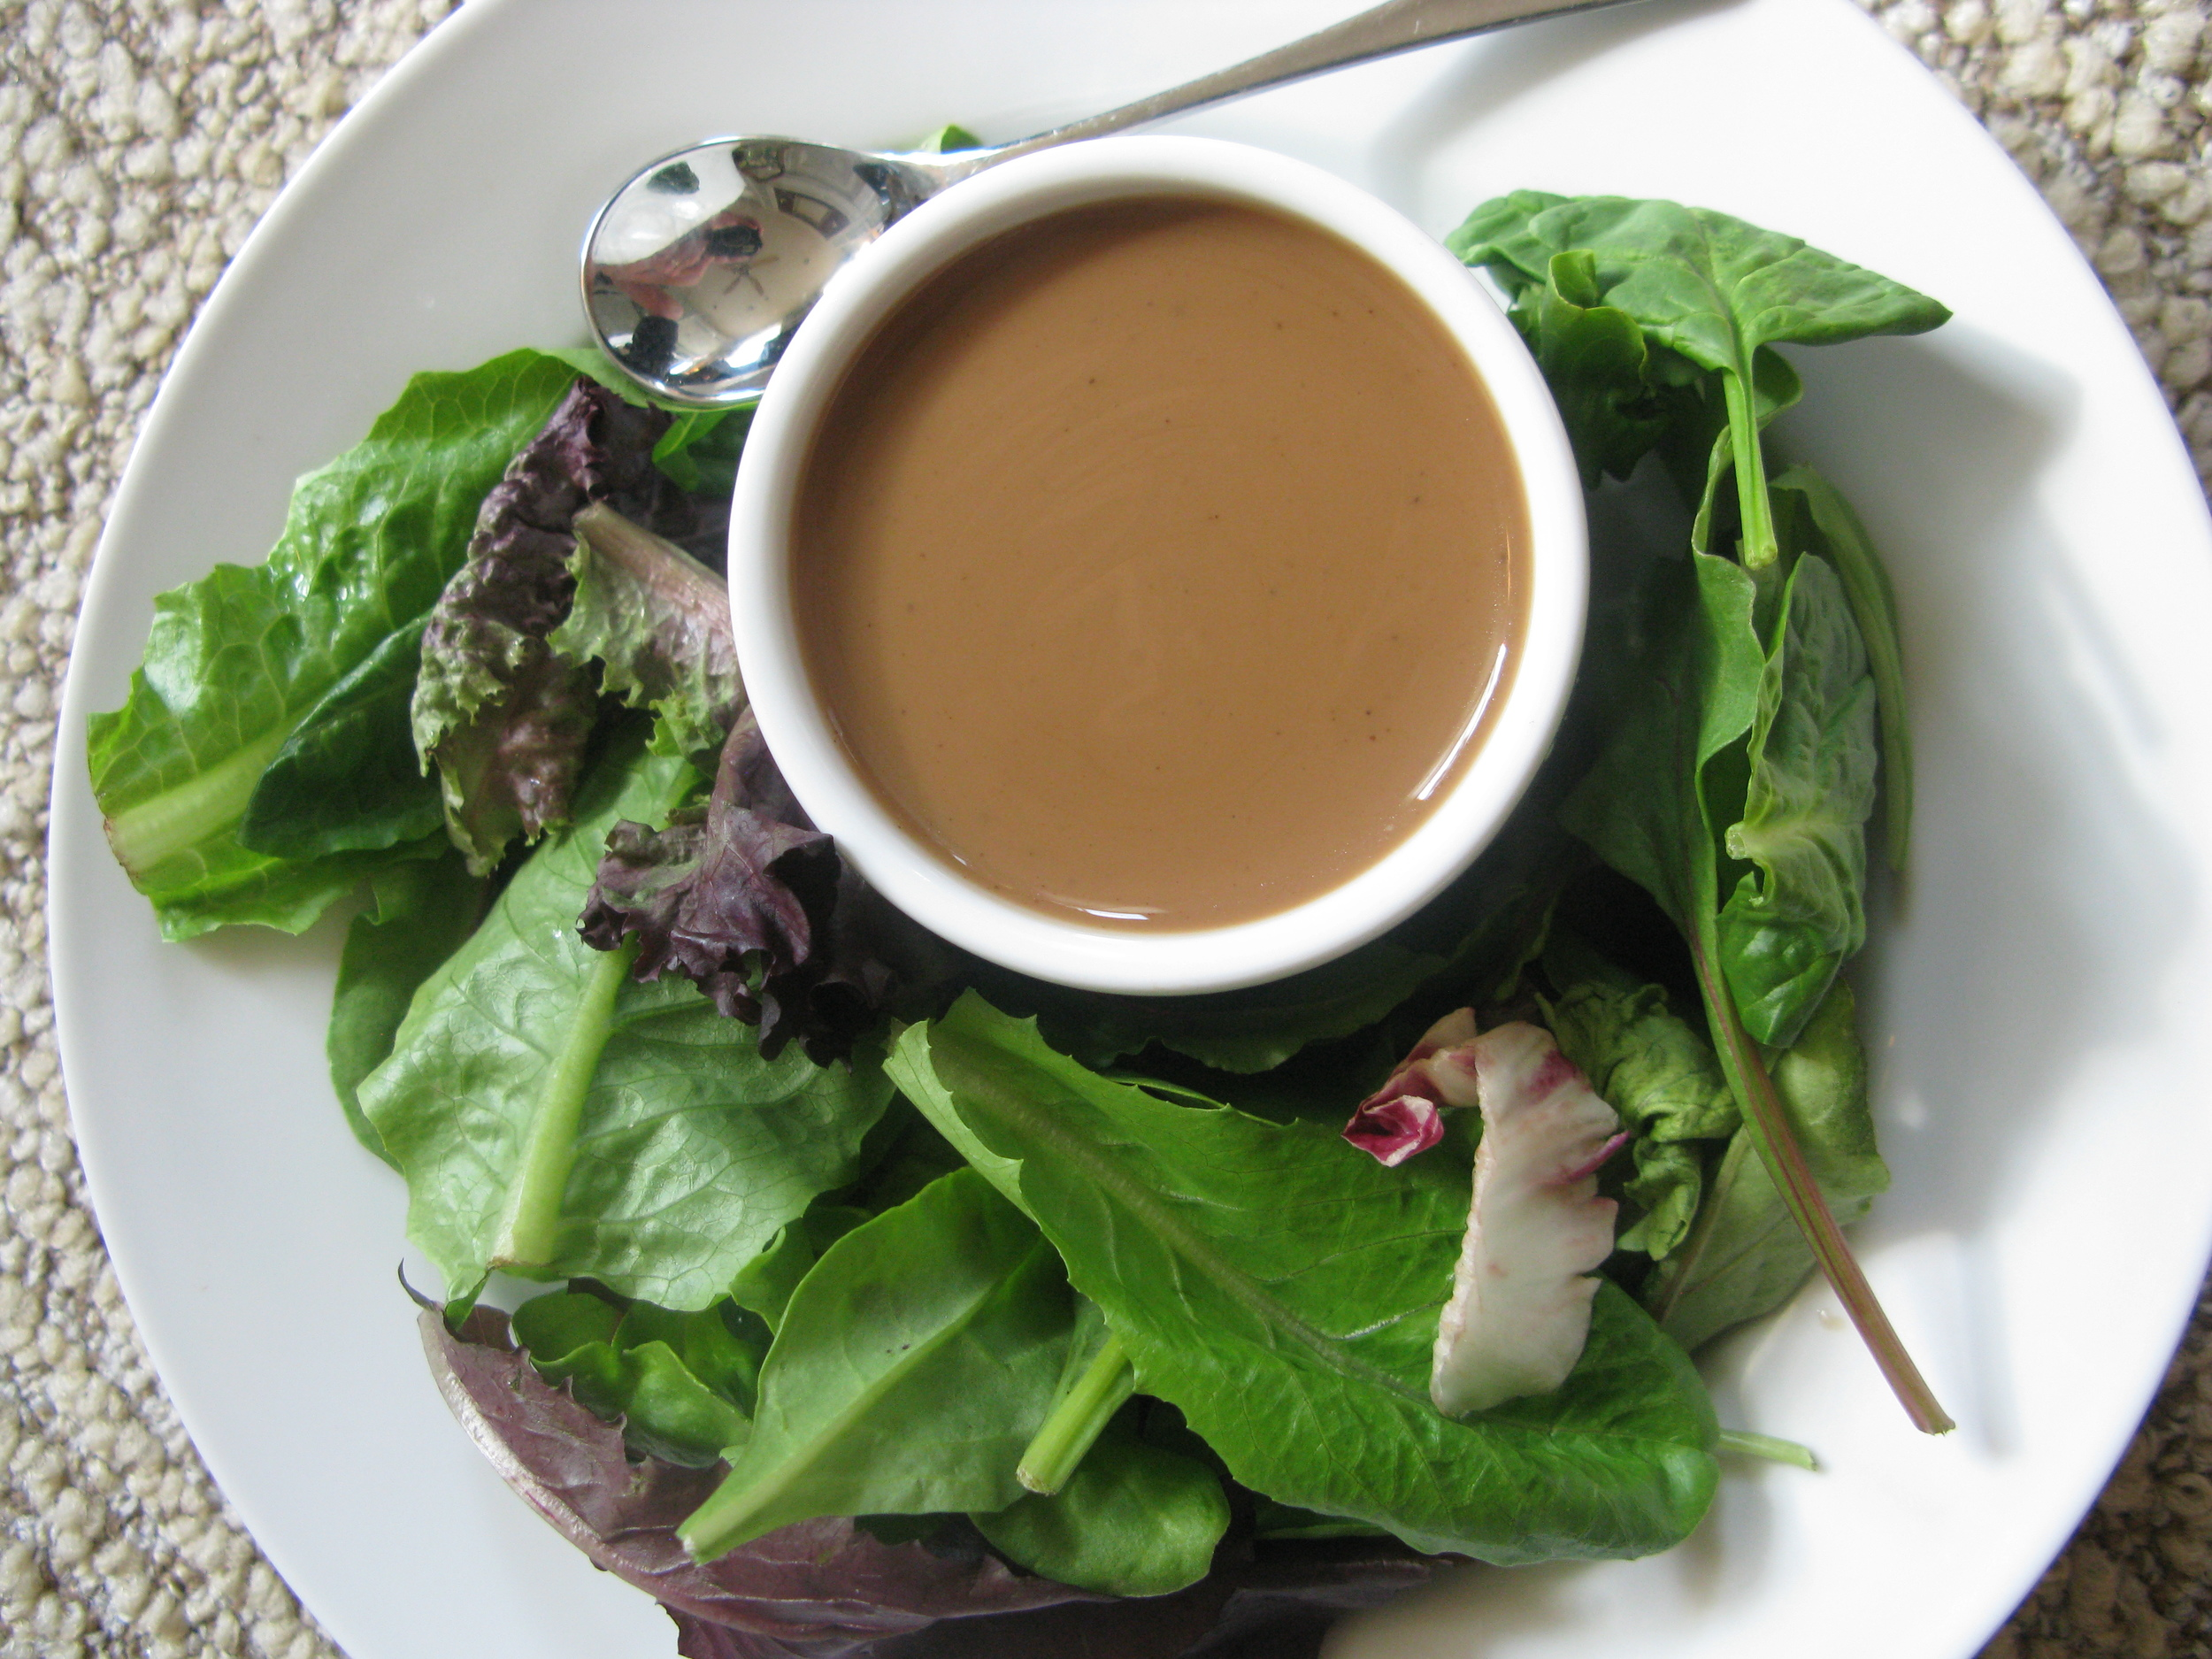 Recipe-Free: Vinaigrette